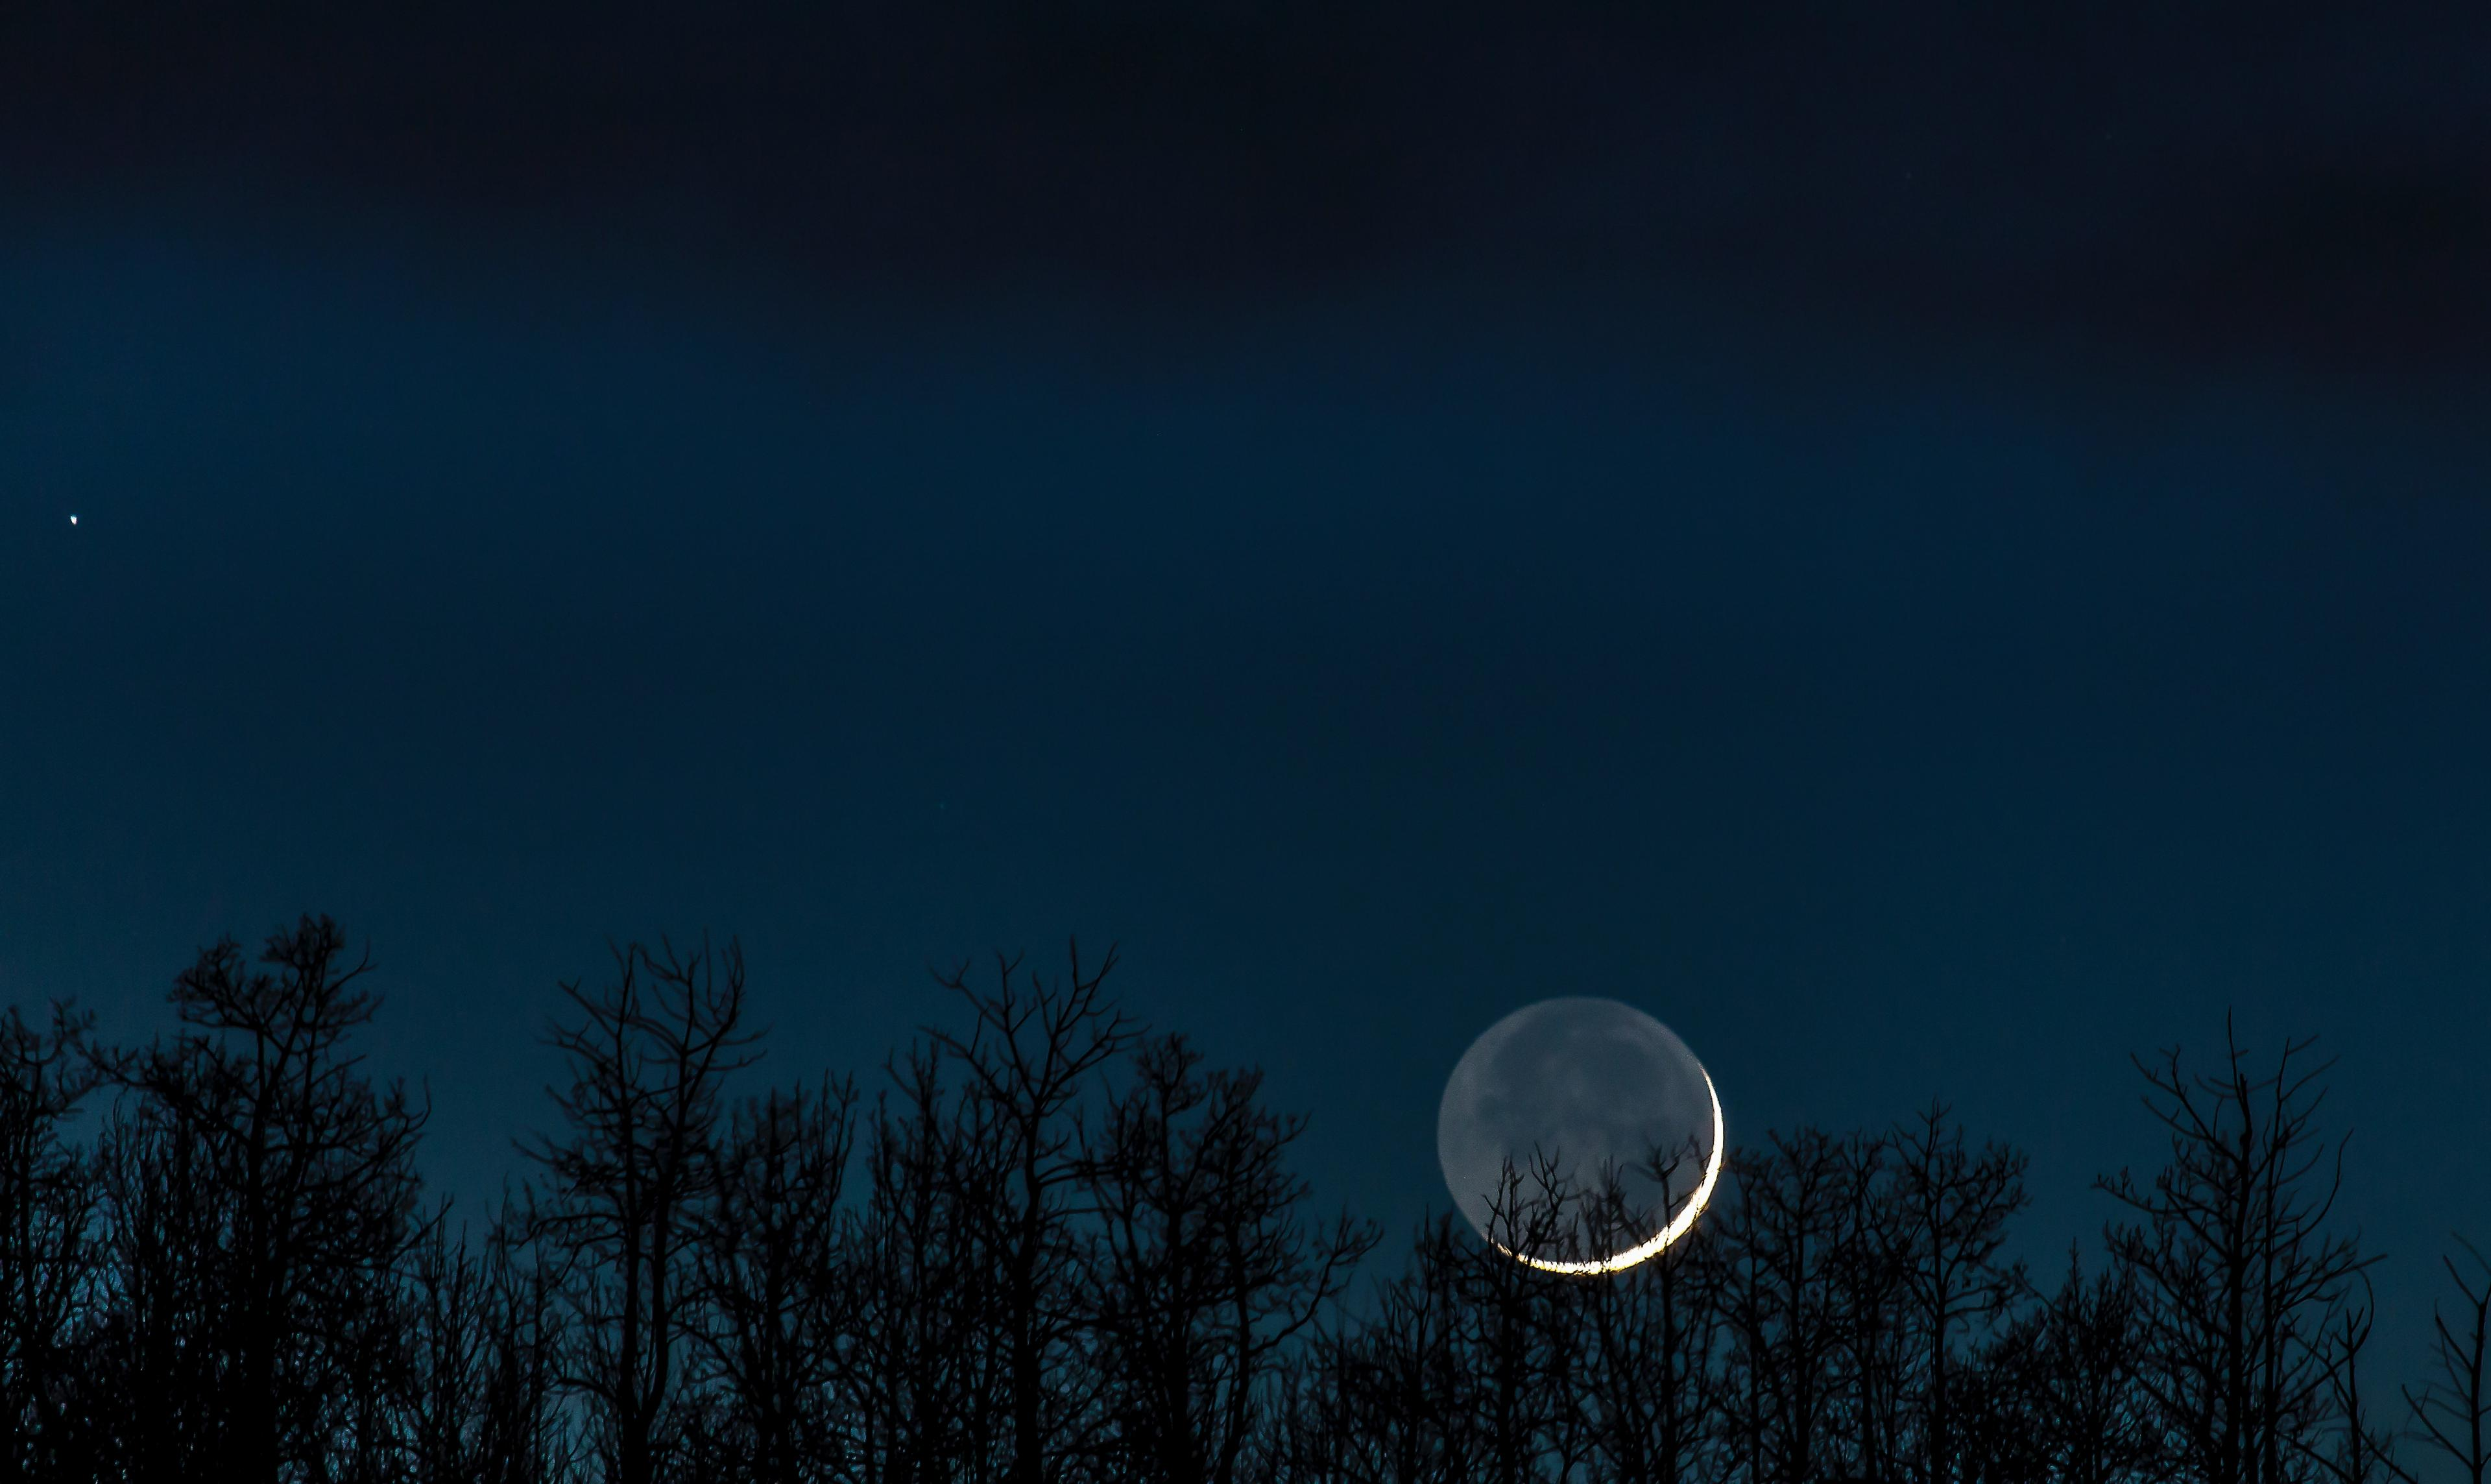 A crescent moon in the dark silhouette of evergreen trees, against a deep blue night sky